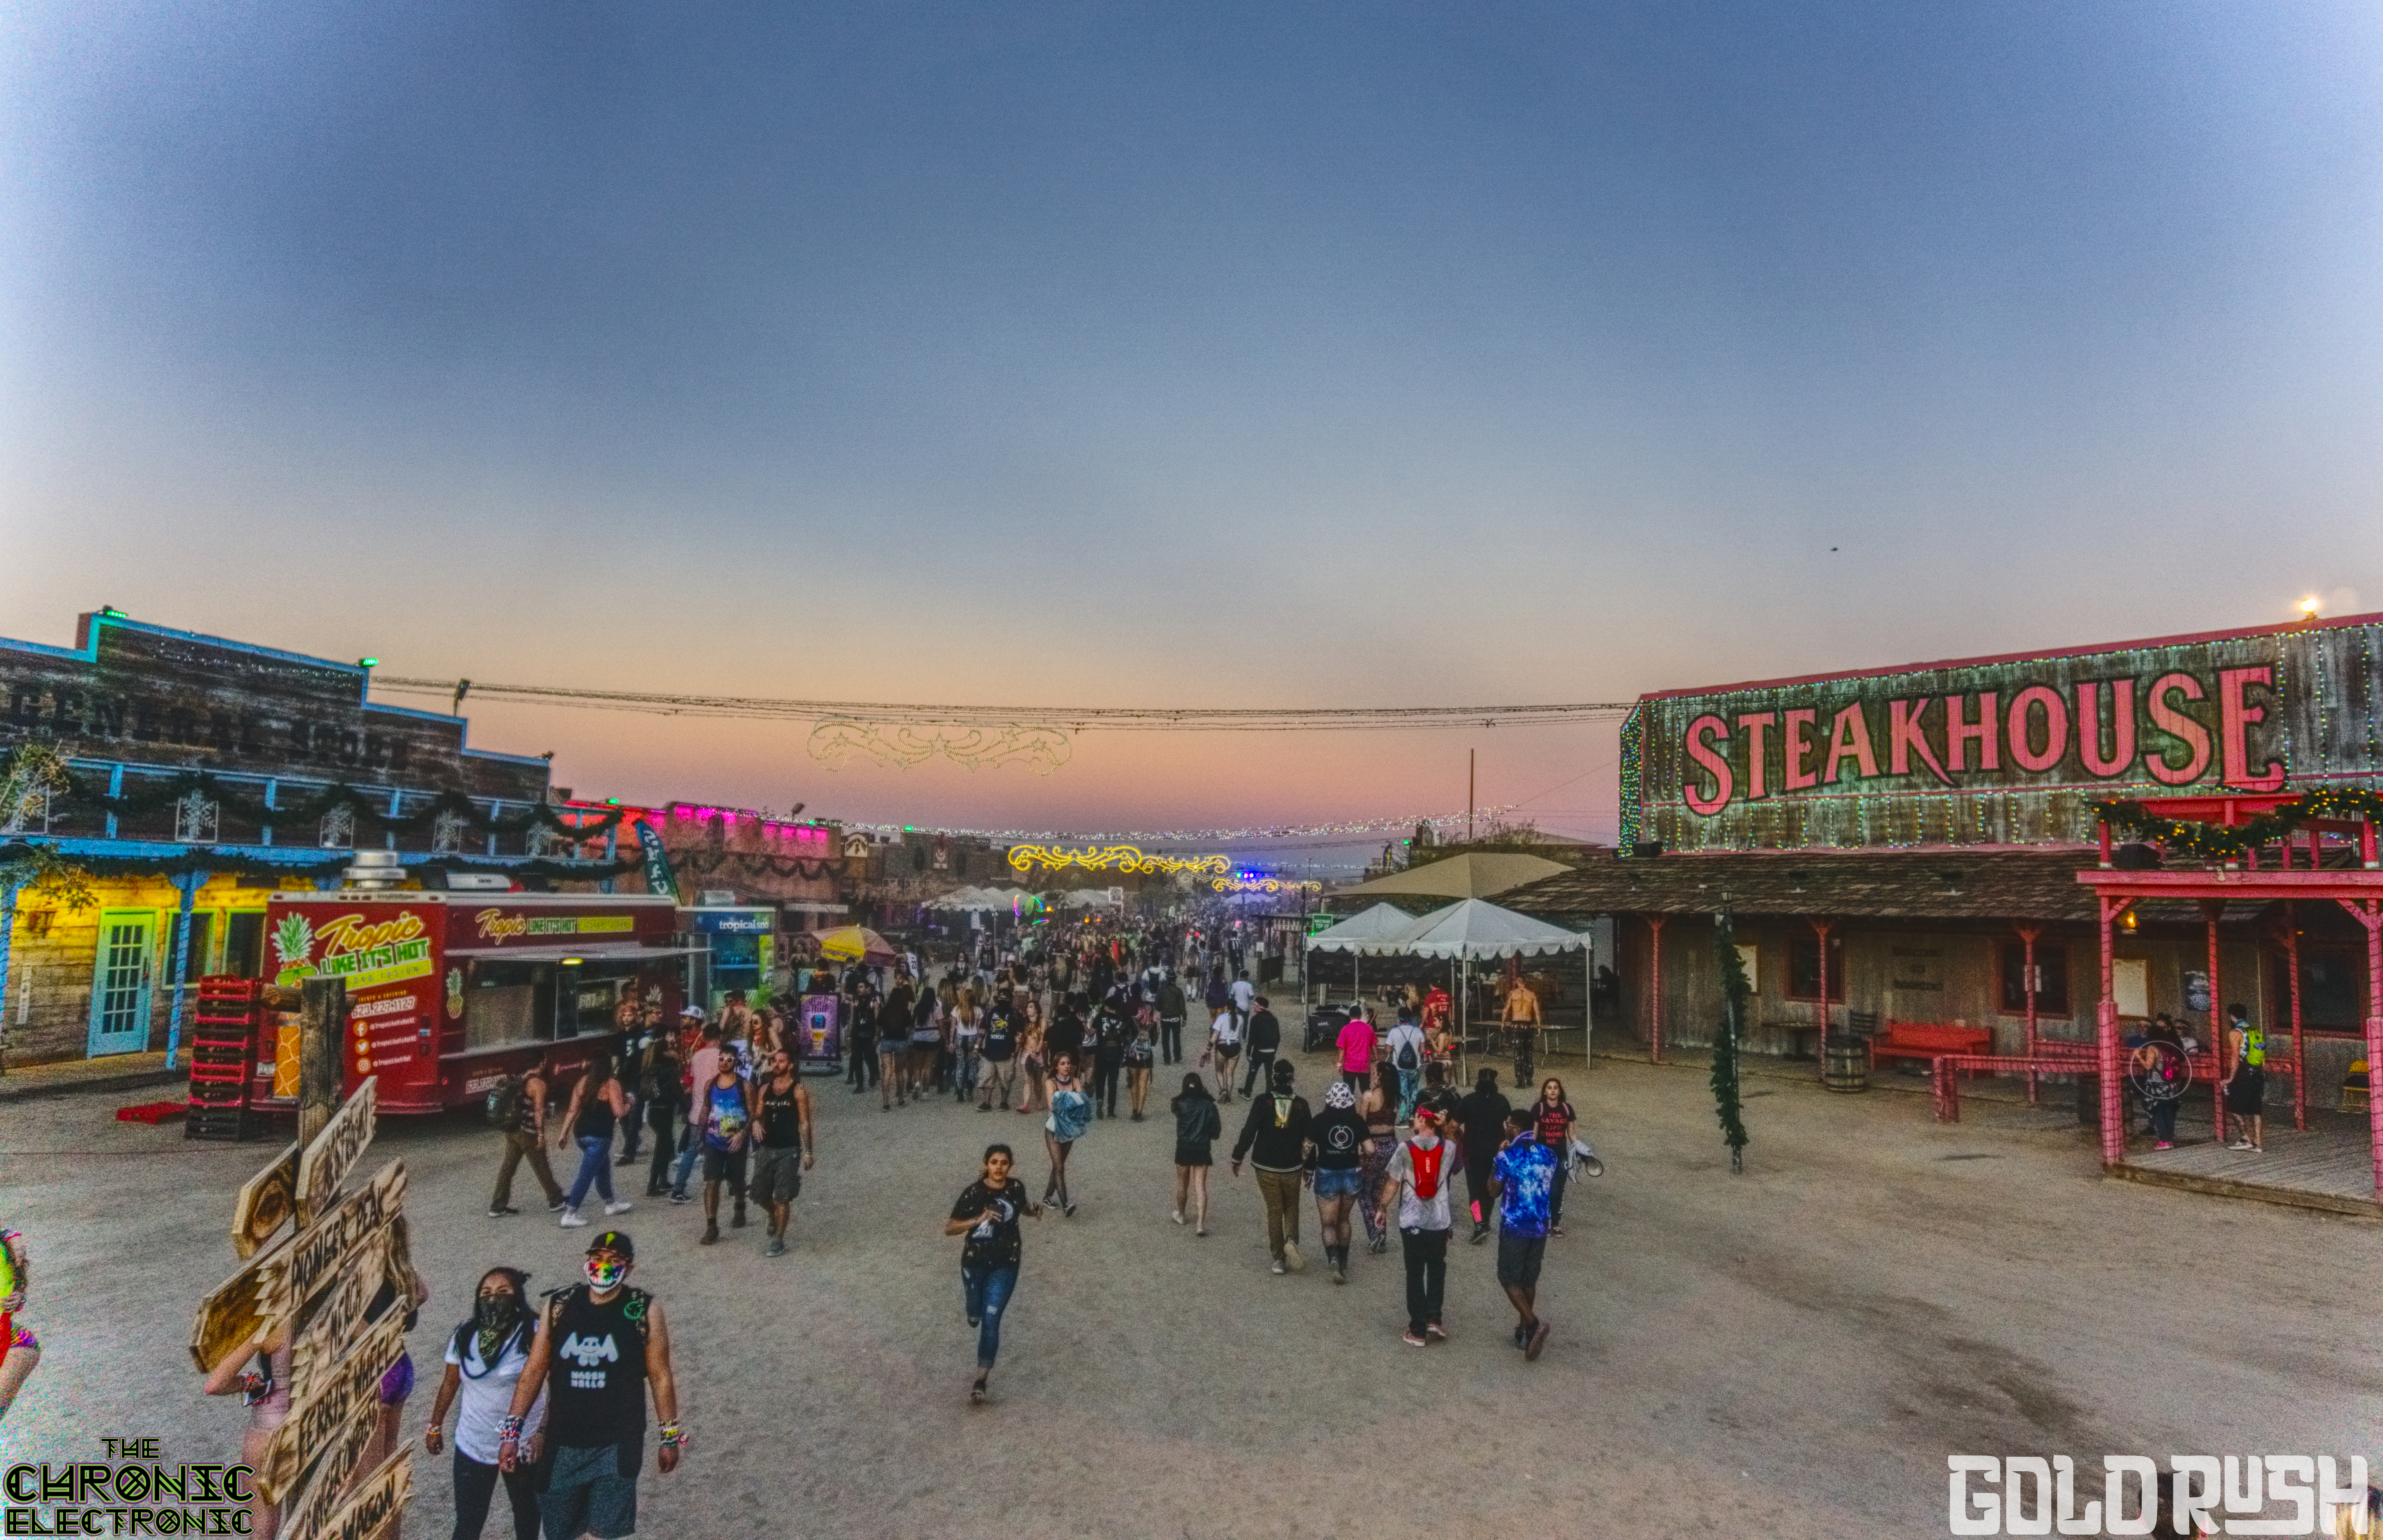 Goldrush Festival Returns to The Wild Wild West Town of